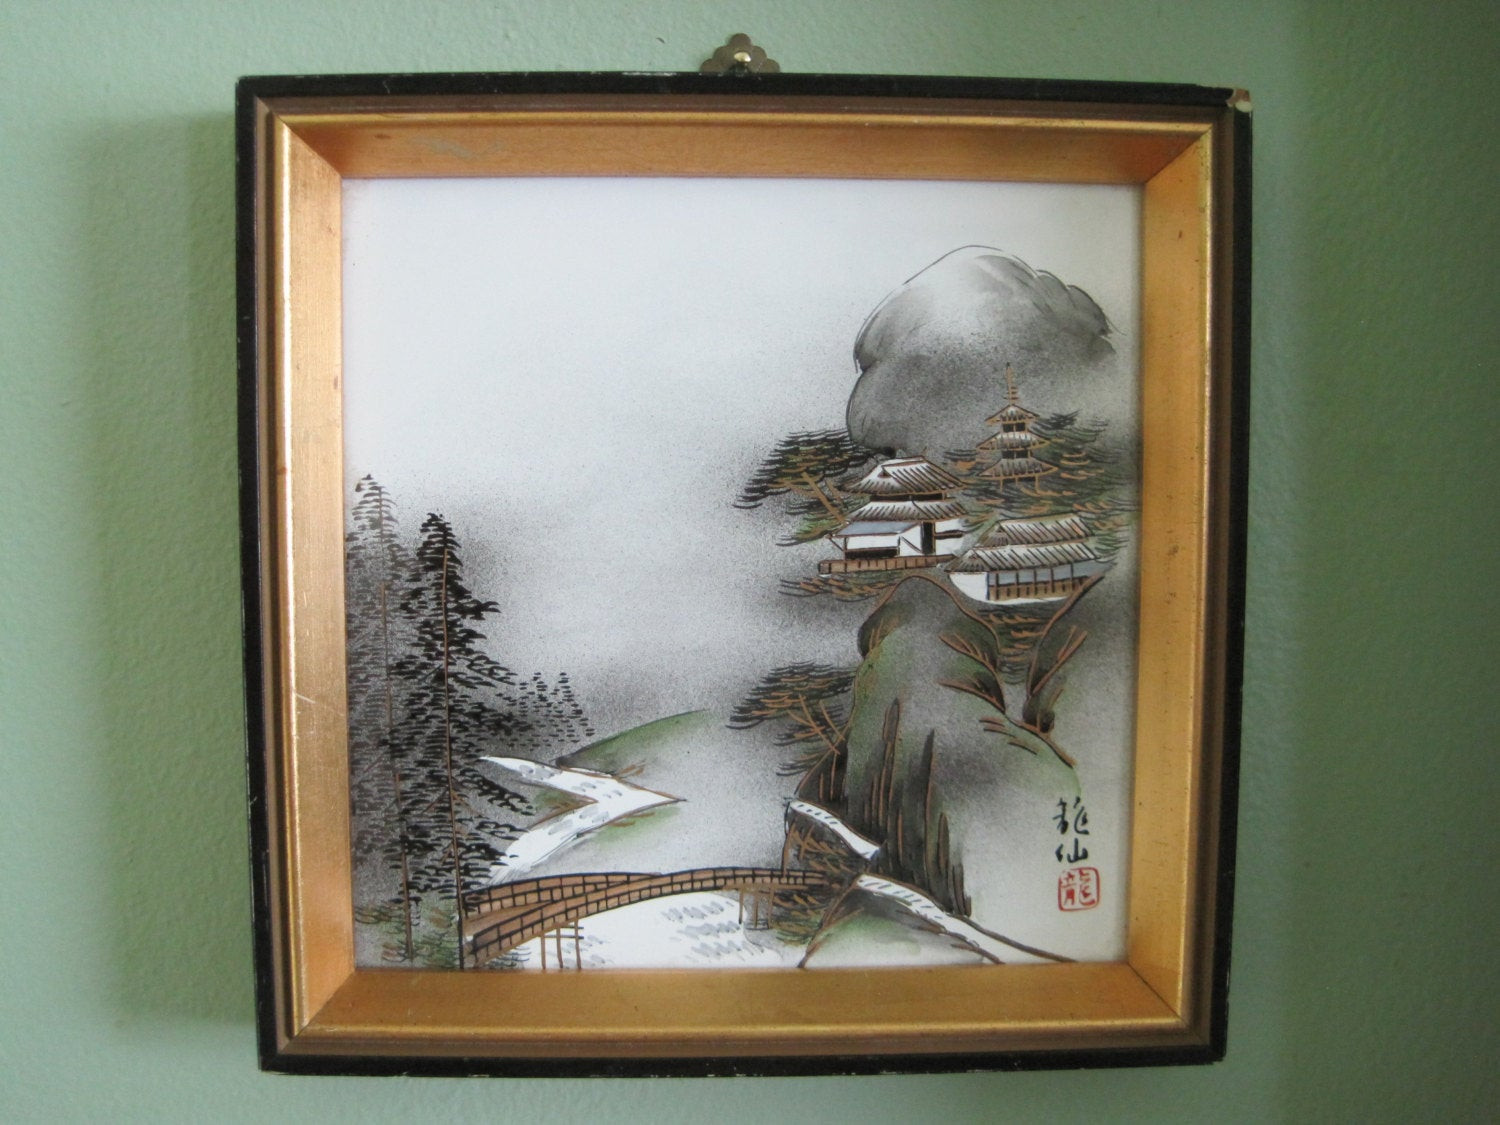 Best ideas about Asian Wall Art . Save or Pin Asian Wall Art Japanese Painting Framed on Ceramic Vintage Now.